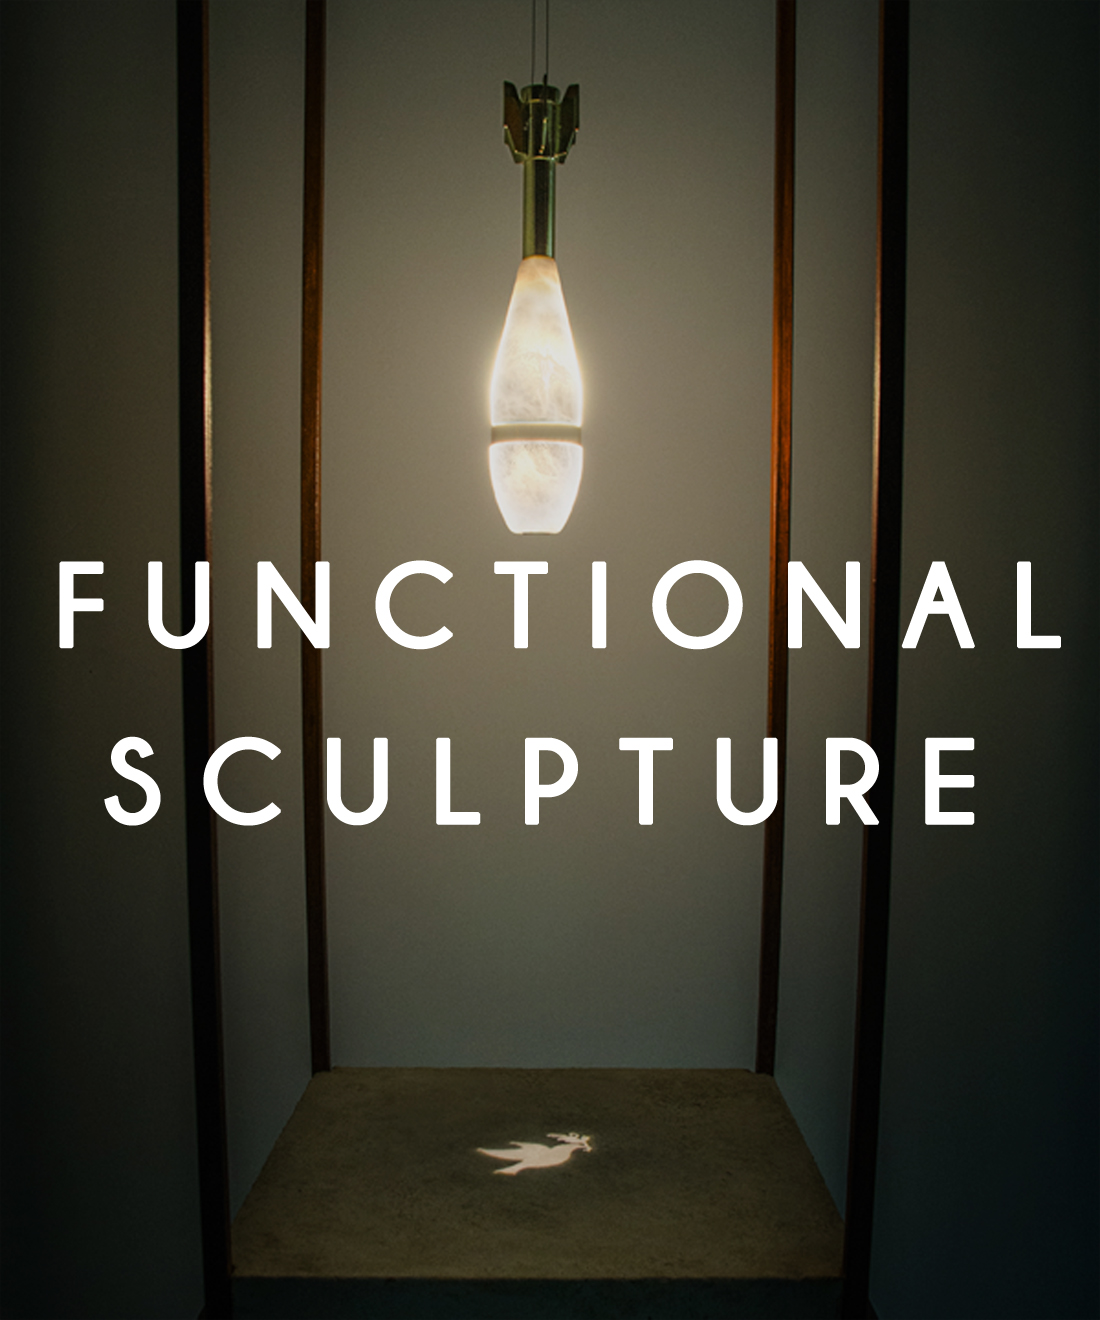 Functional sculpture by Amarist studio